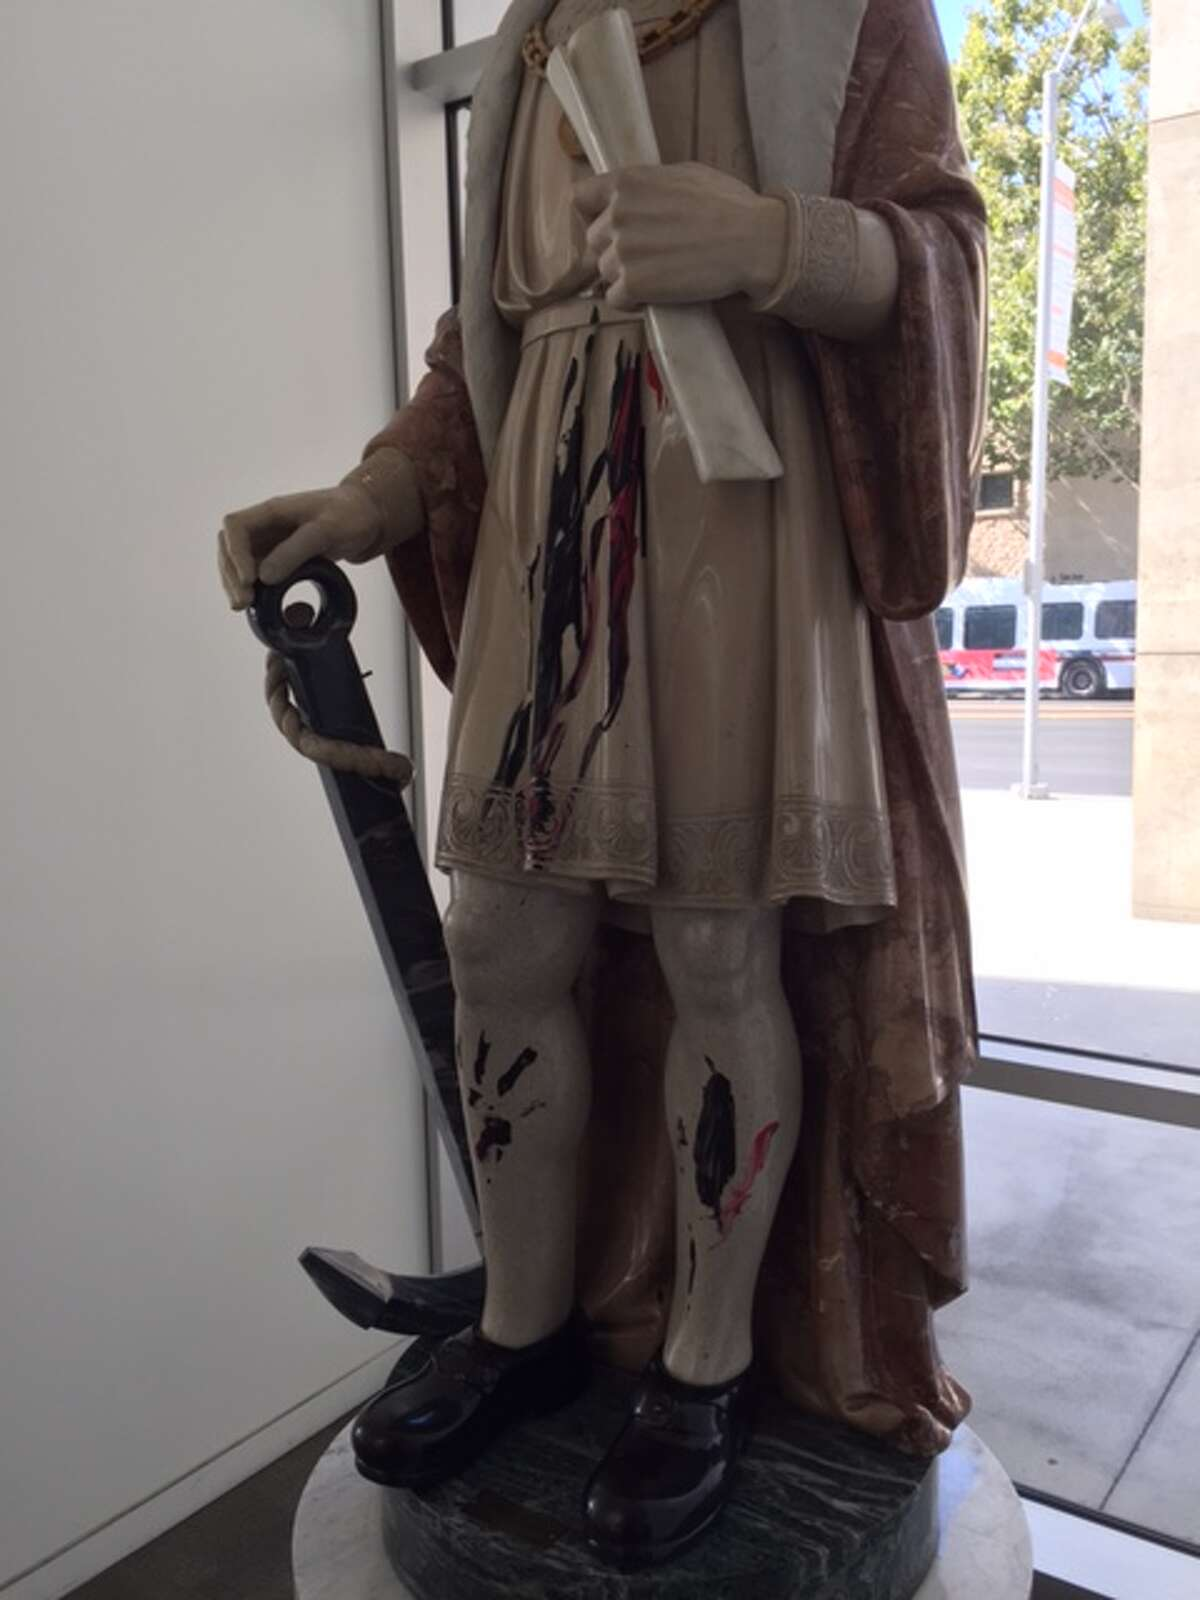 A woman was arrested and cited Friday for vandalizing a controversial statue of Christopher Columbus in San Jose City Hall.